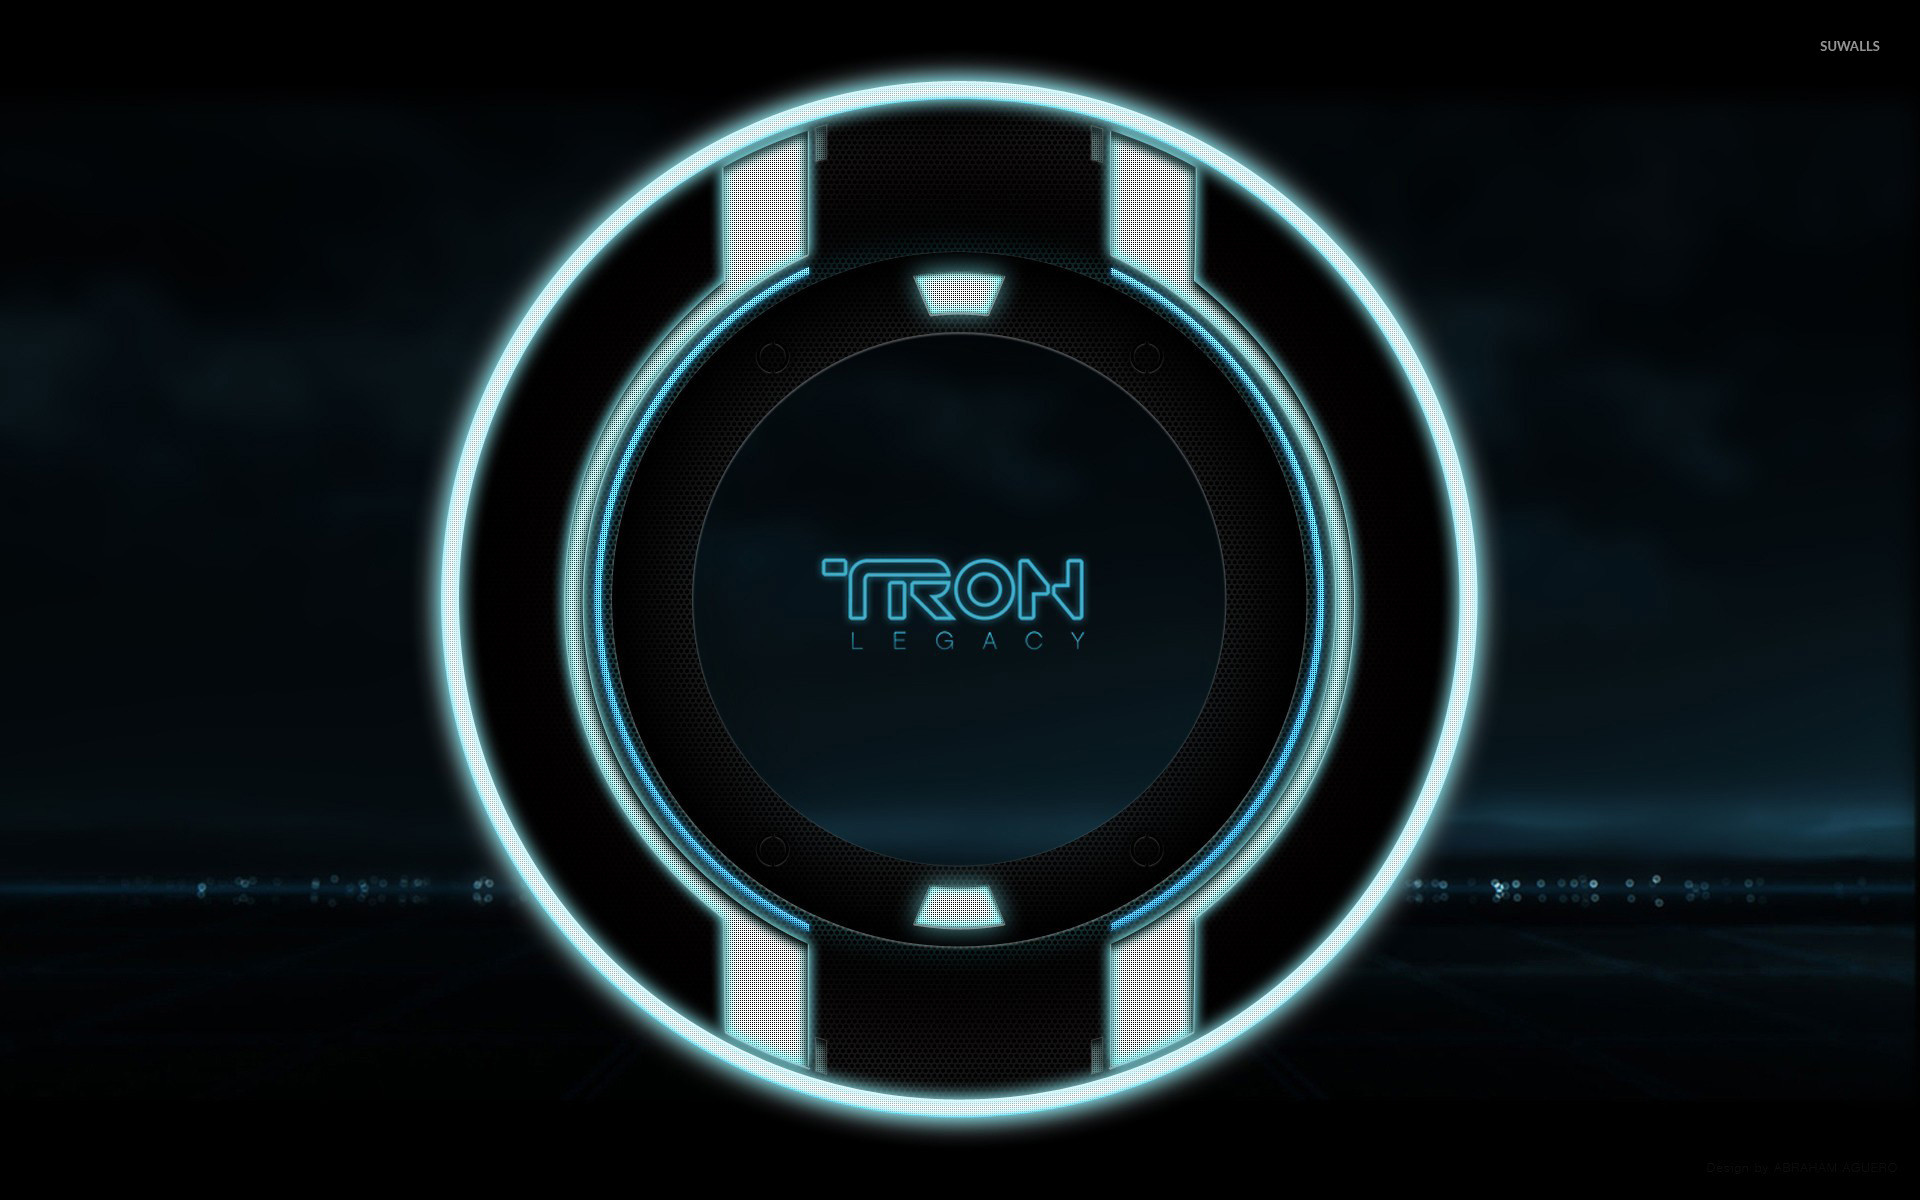 1920x1200 TRON: Legacy [8] wallpaper  jpg